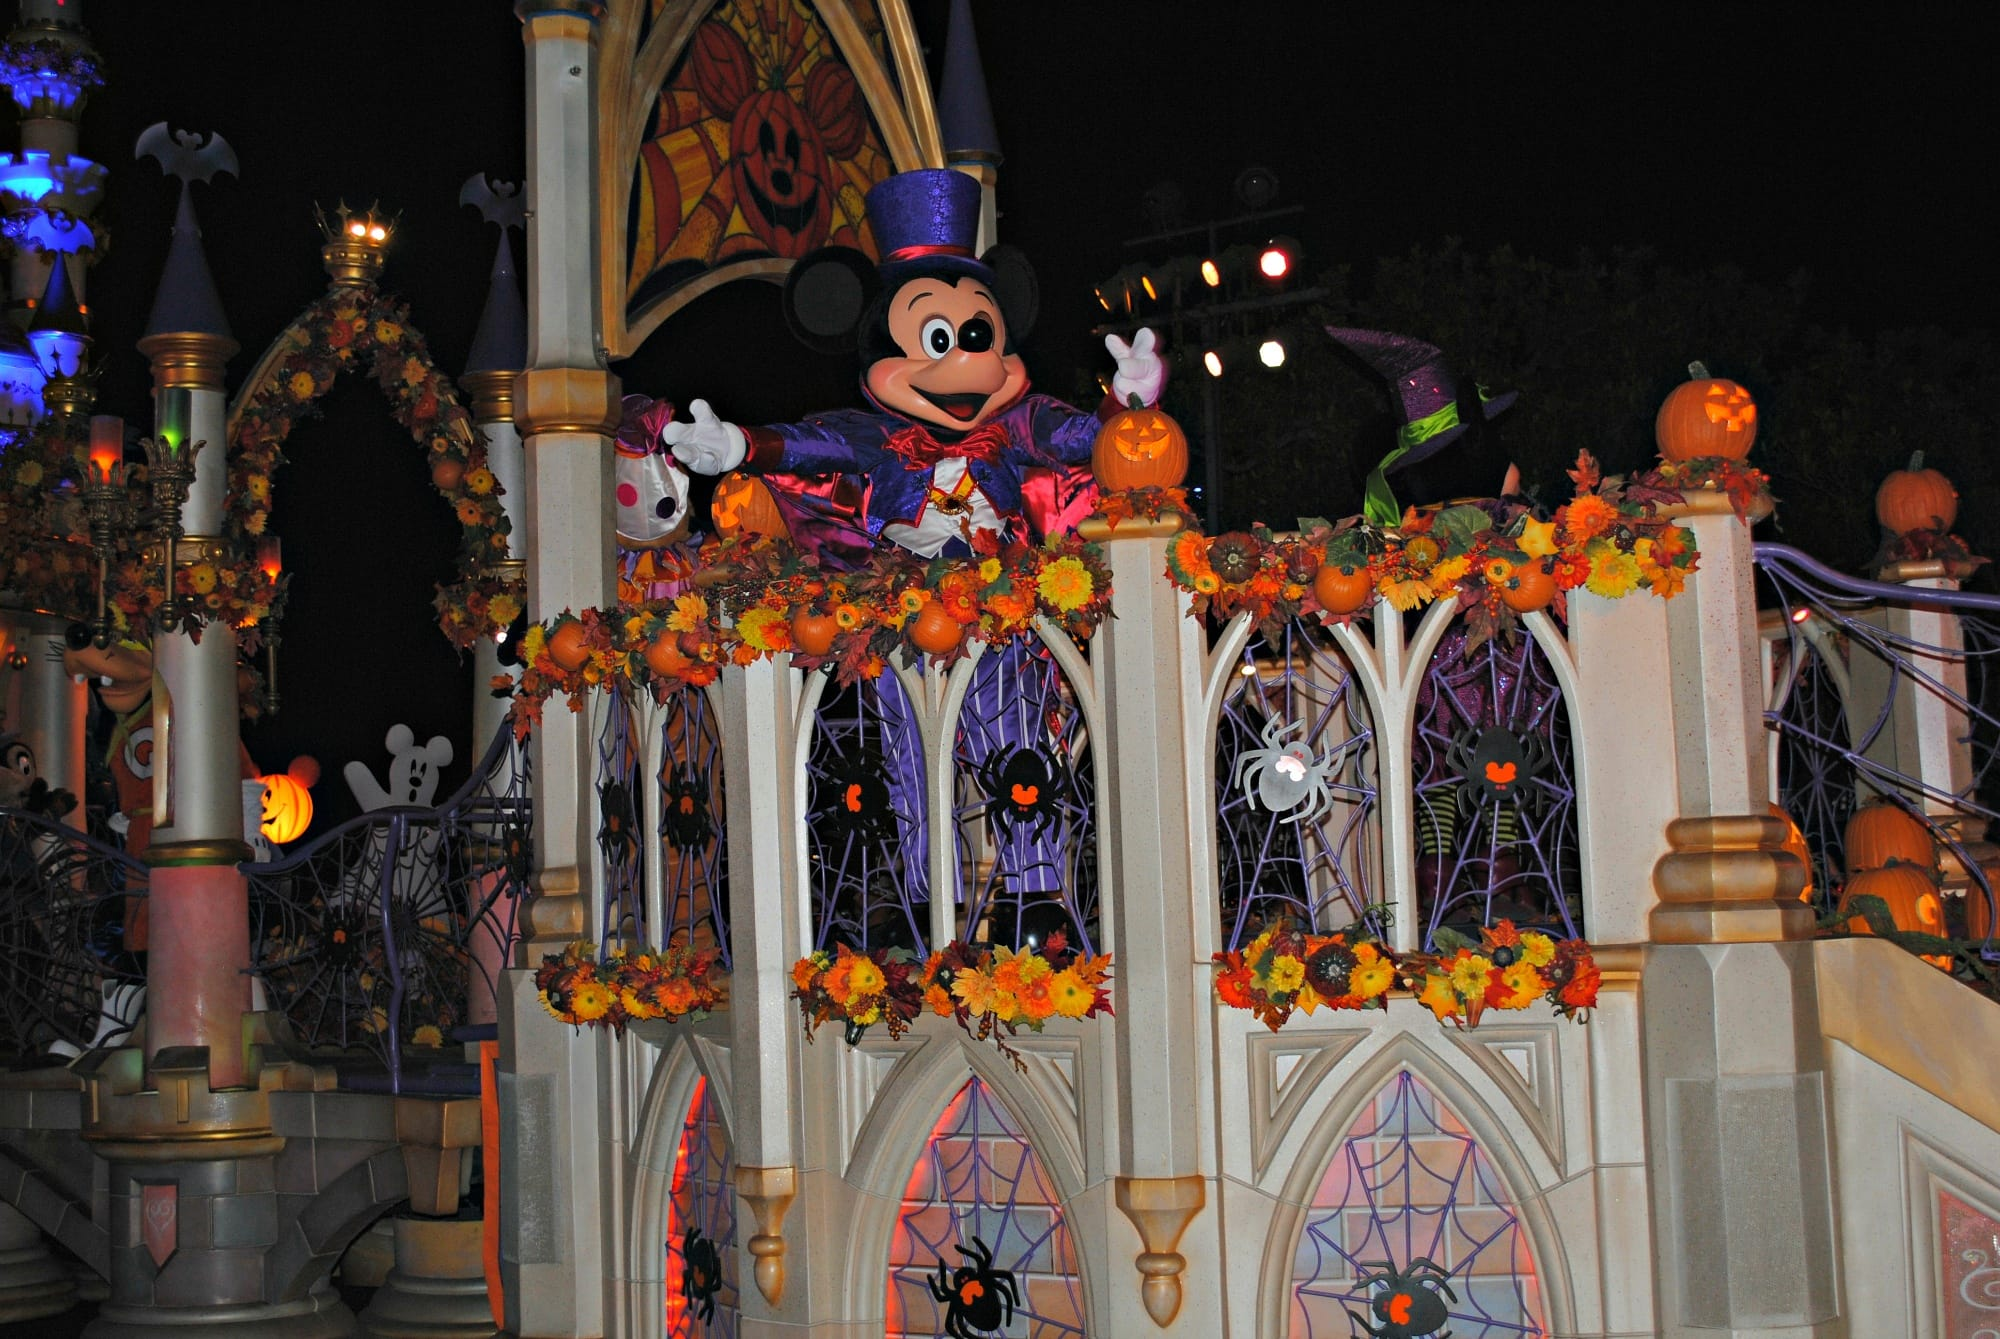 The headcheese, Mickey Mouse, in a Halloween-themed parade at Disneyland